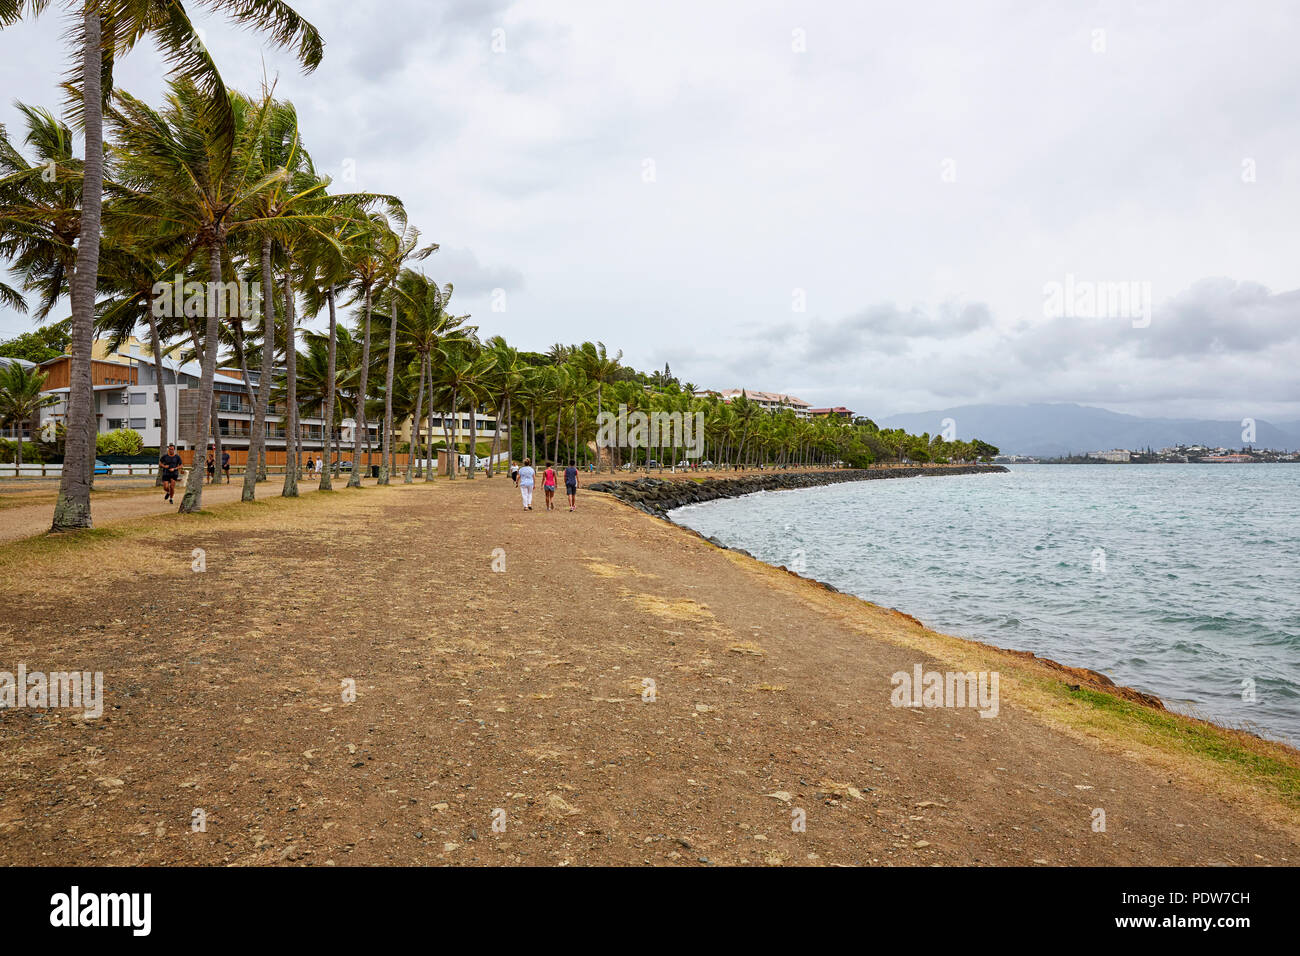 People walking stralling on the Pierre Vernier Promenade in Noumea New Caladonia (Nouvelle Caledonie) Baie des Petroles - Stock Image